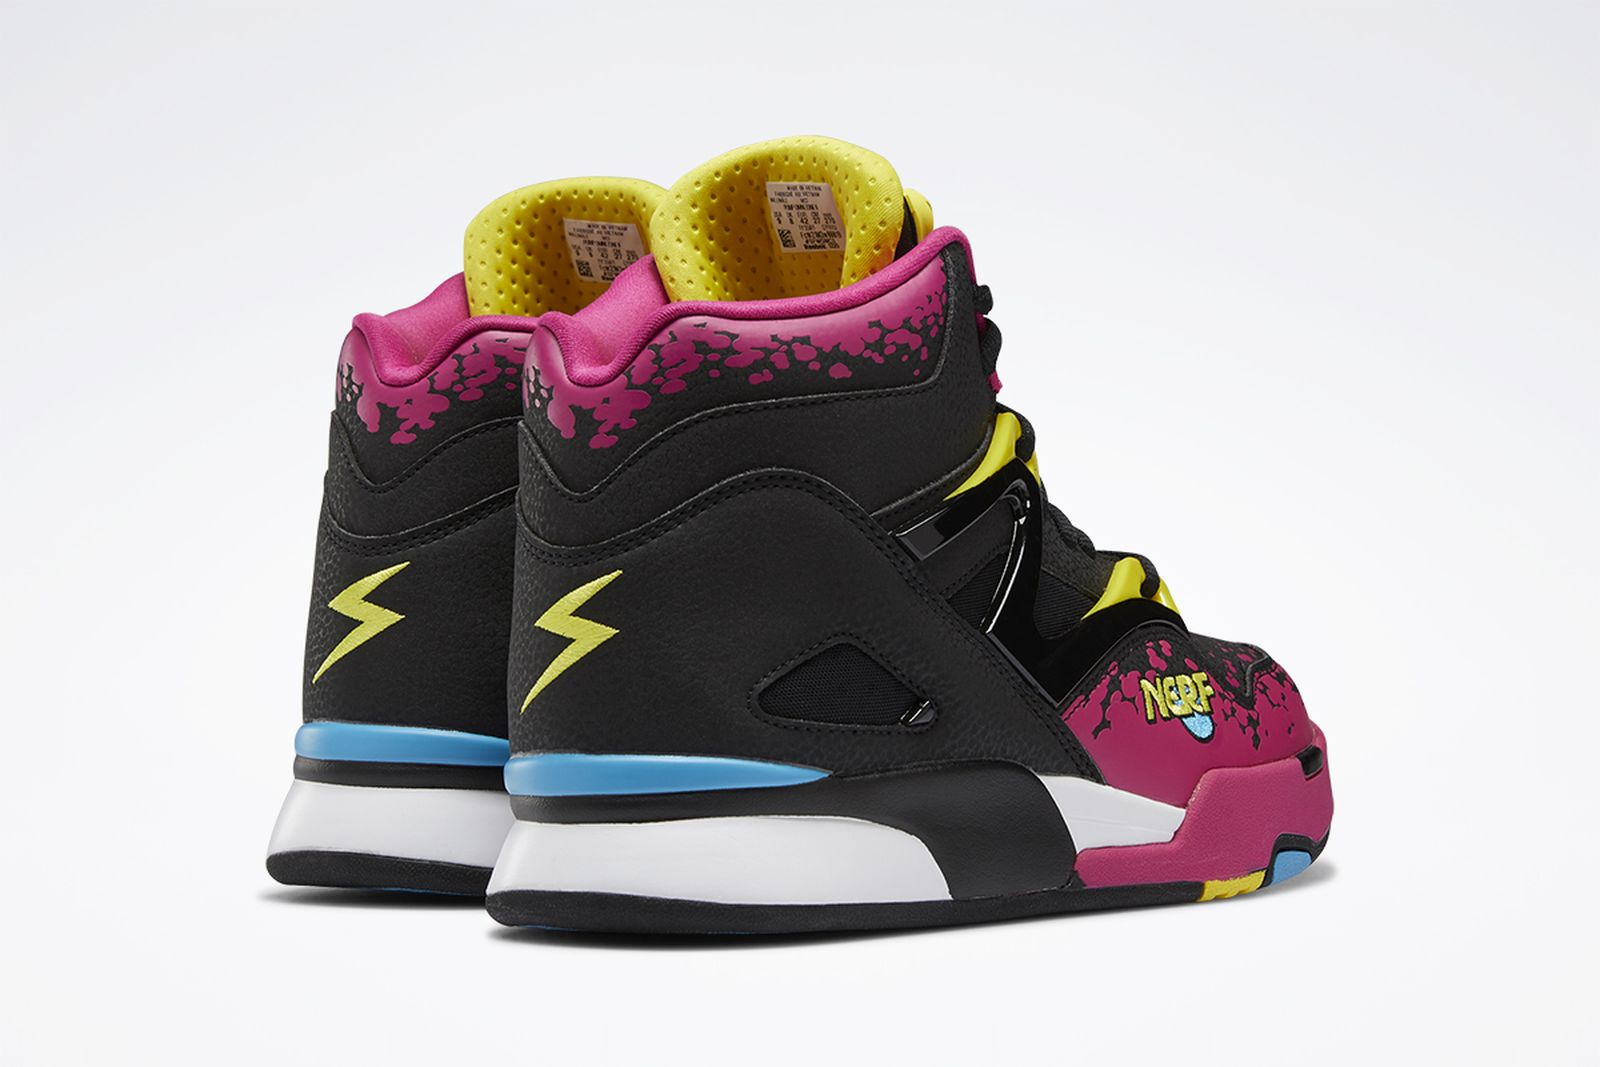 nerf-reebok-retro-basketball-collection-release-date-price-12